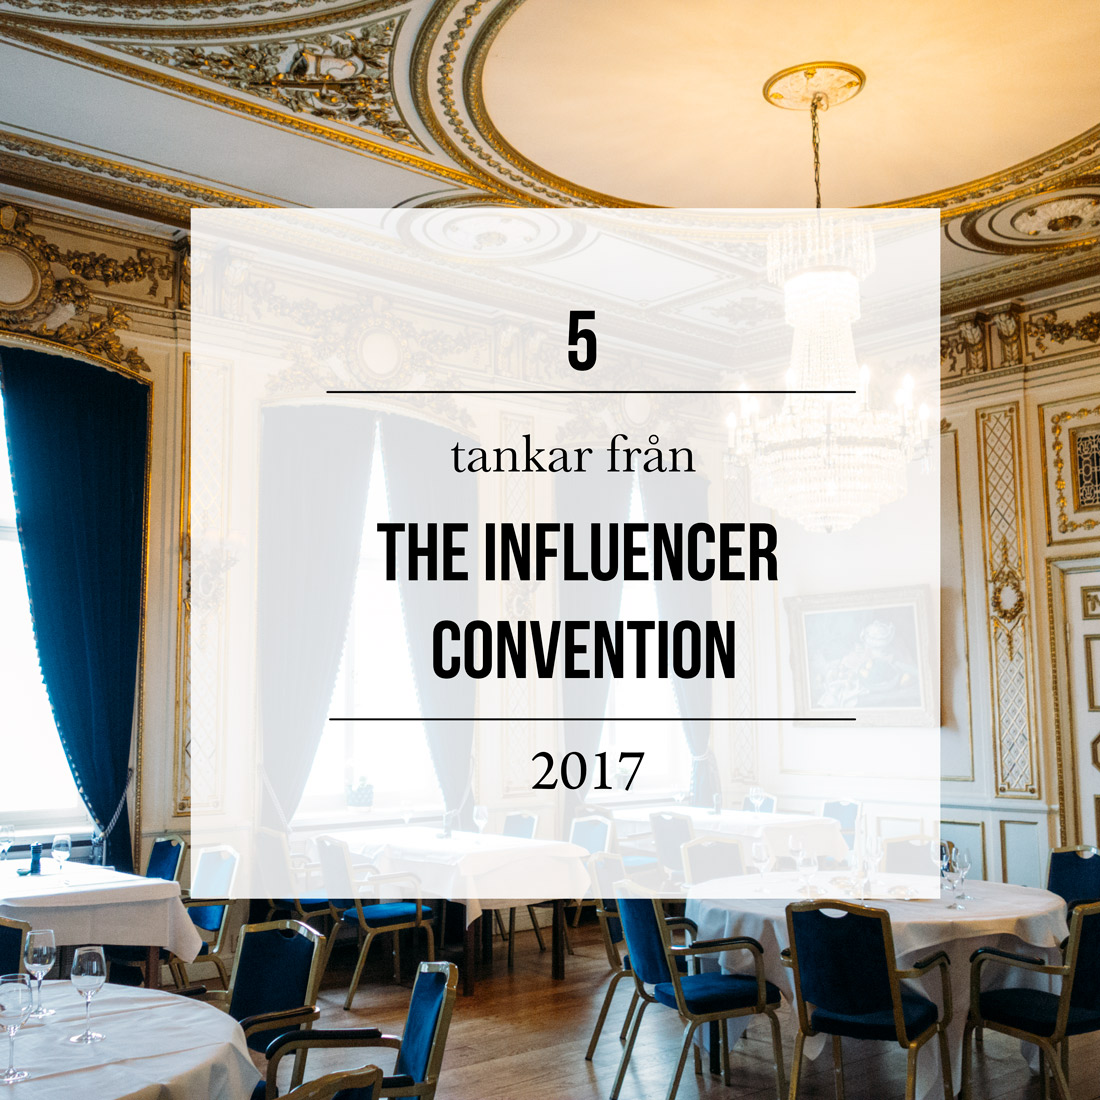 The influencer convention 2017 på Grand hotel Saltsjöbaden